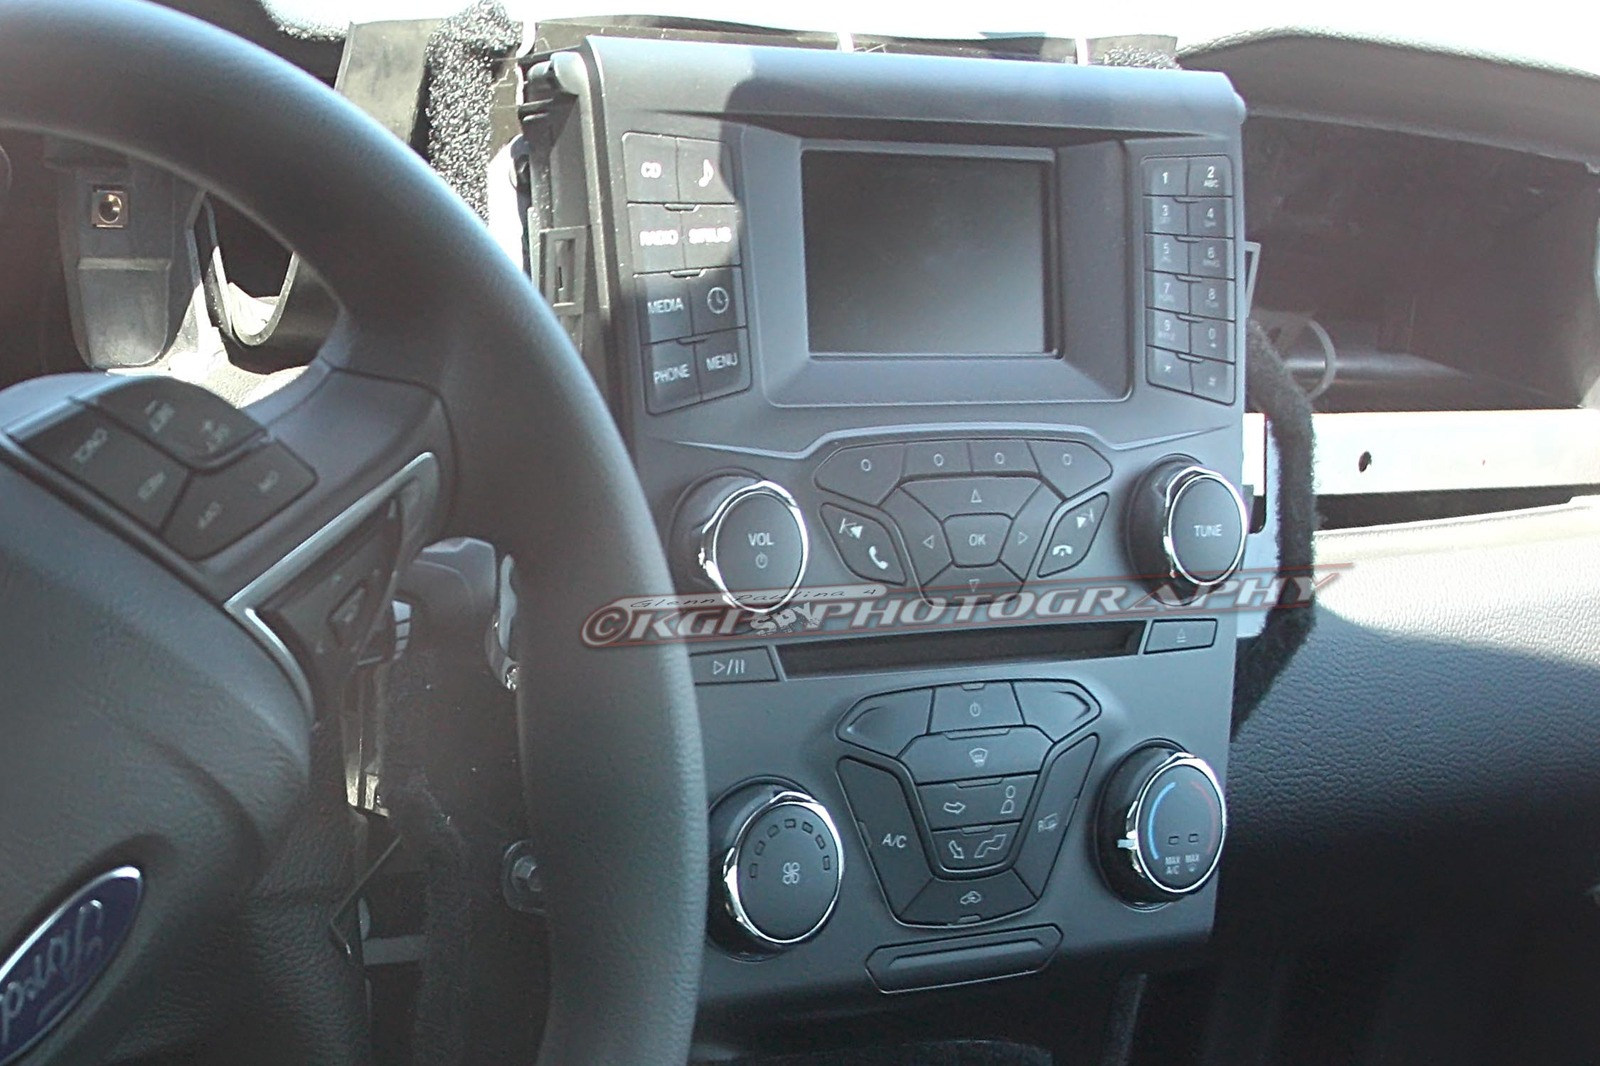 2015 Ford Mustang Spy Photos - Interior